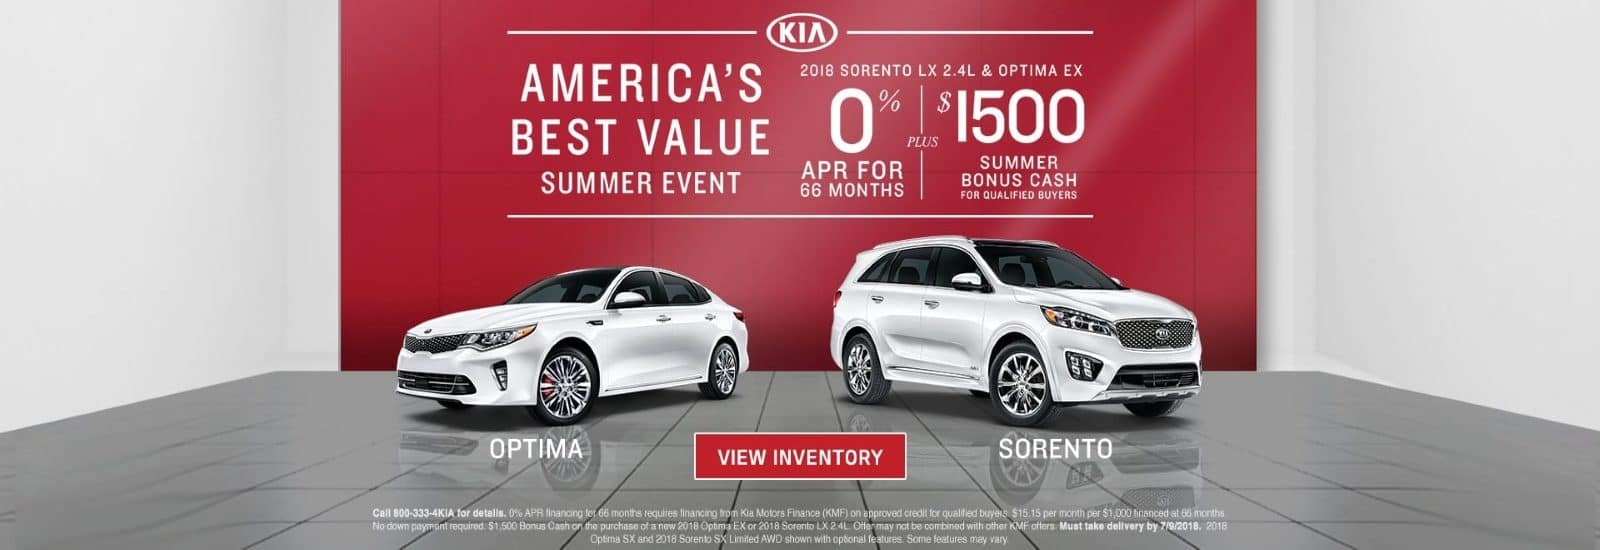 Kia Dealer In Indianapolis | Ray Skillman Westside Kia